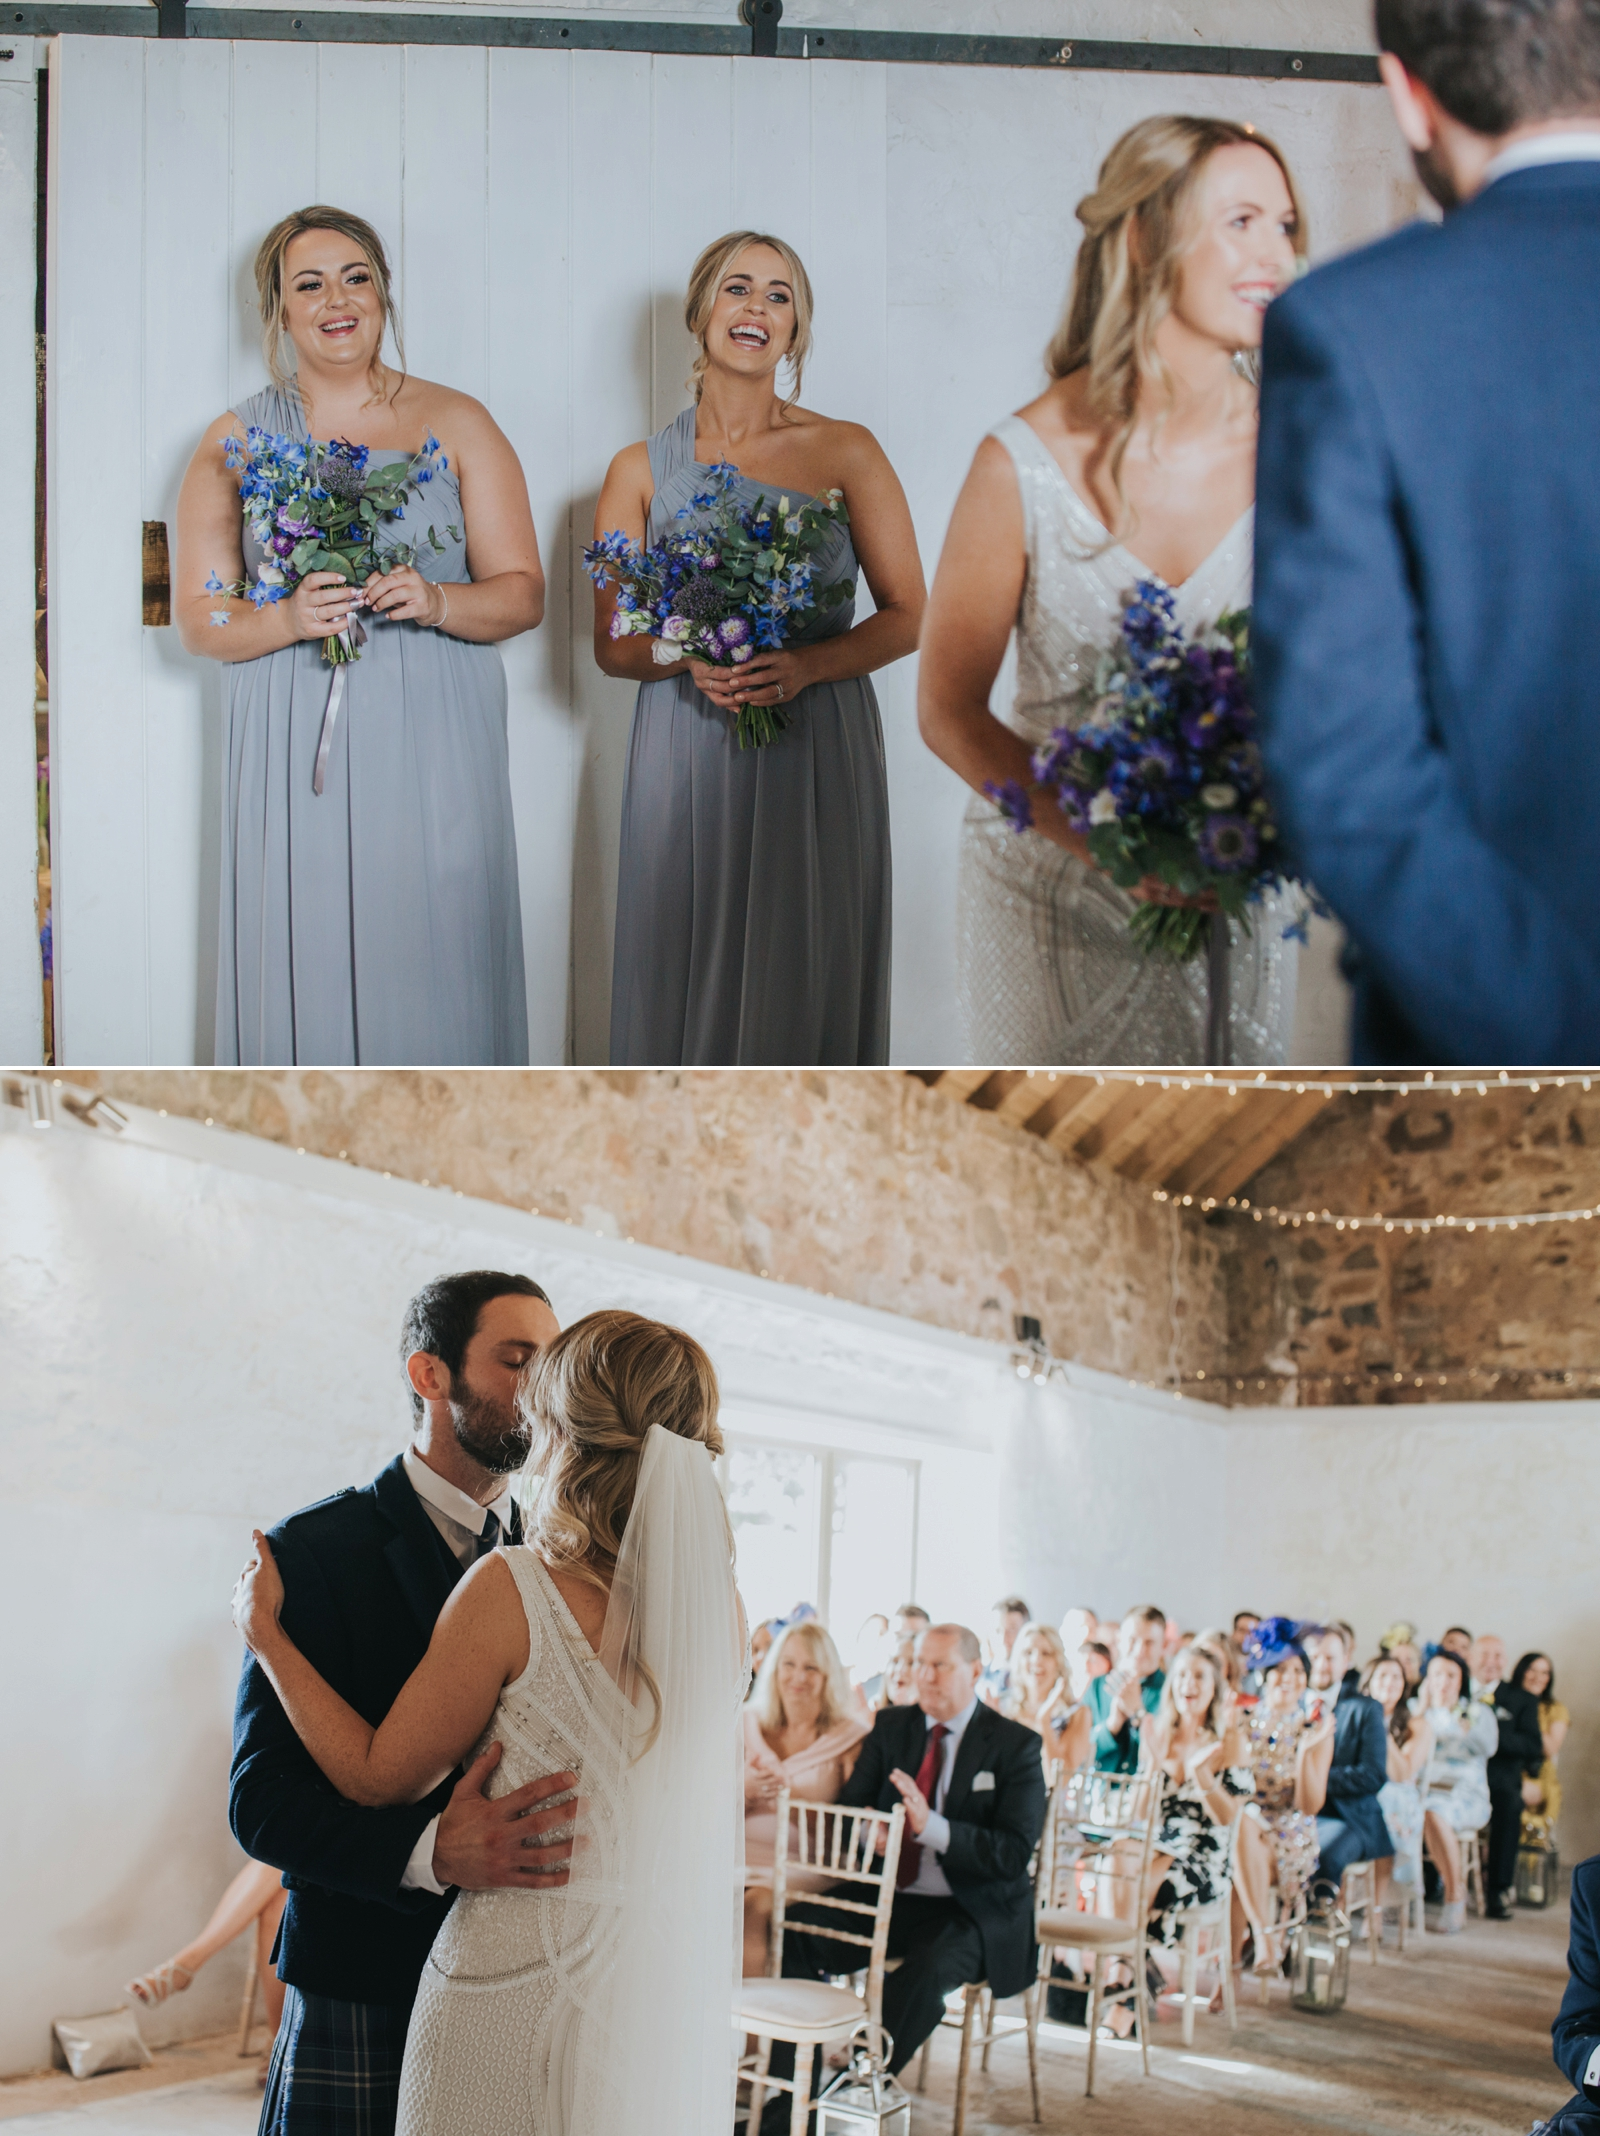 cow-shed-crail-rustic-wedding-gemma-andy-loraine-ross-photographygemma-andy-wedding-0333.jpg